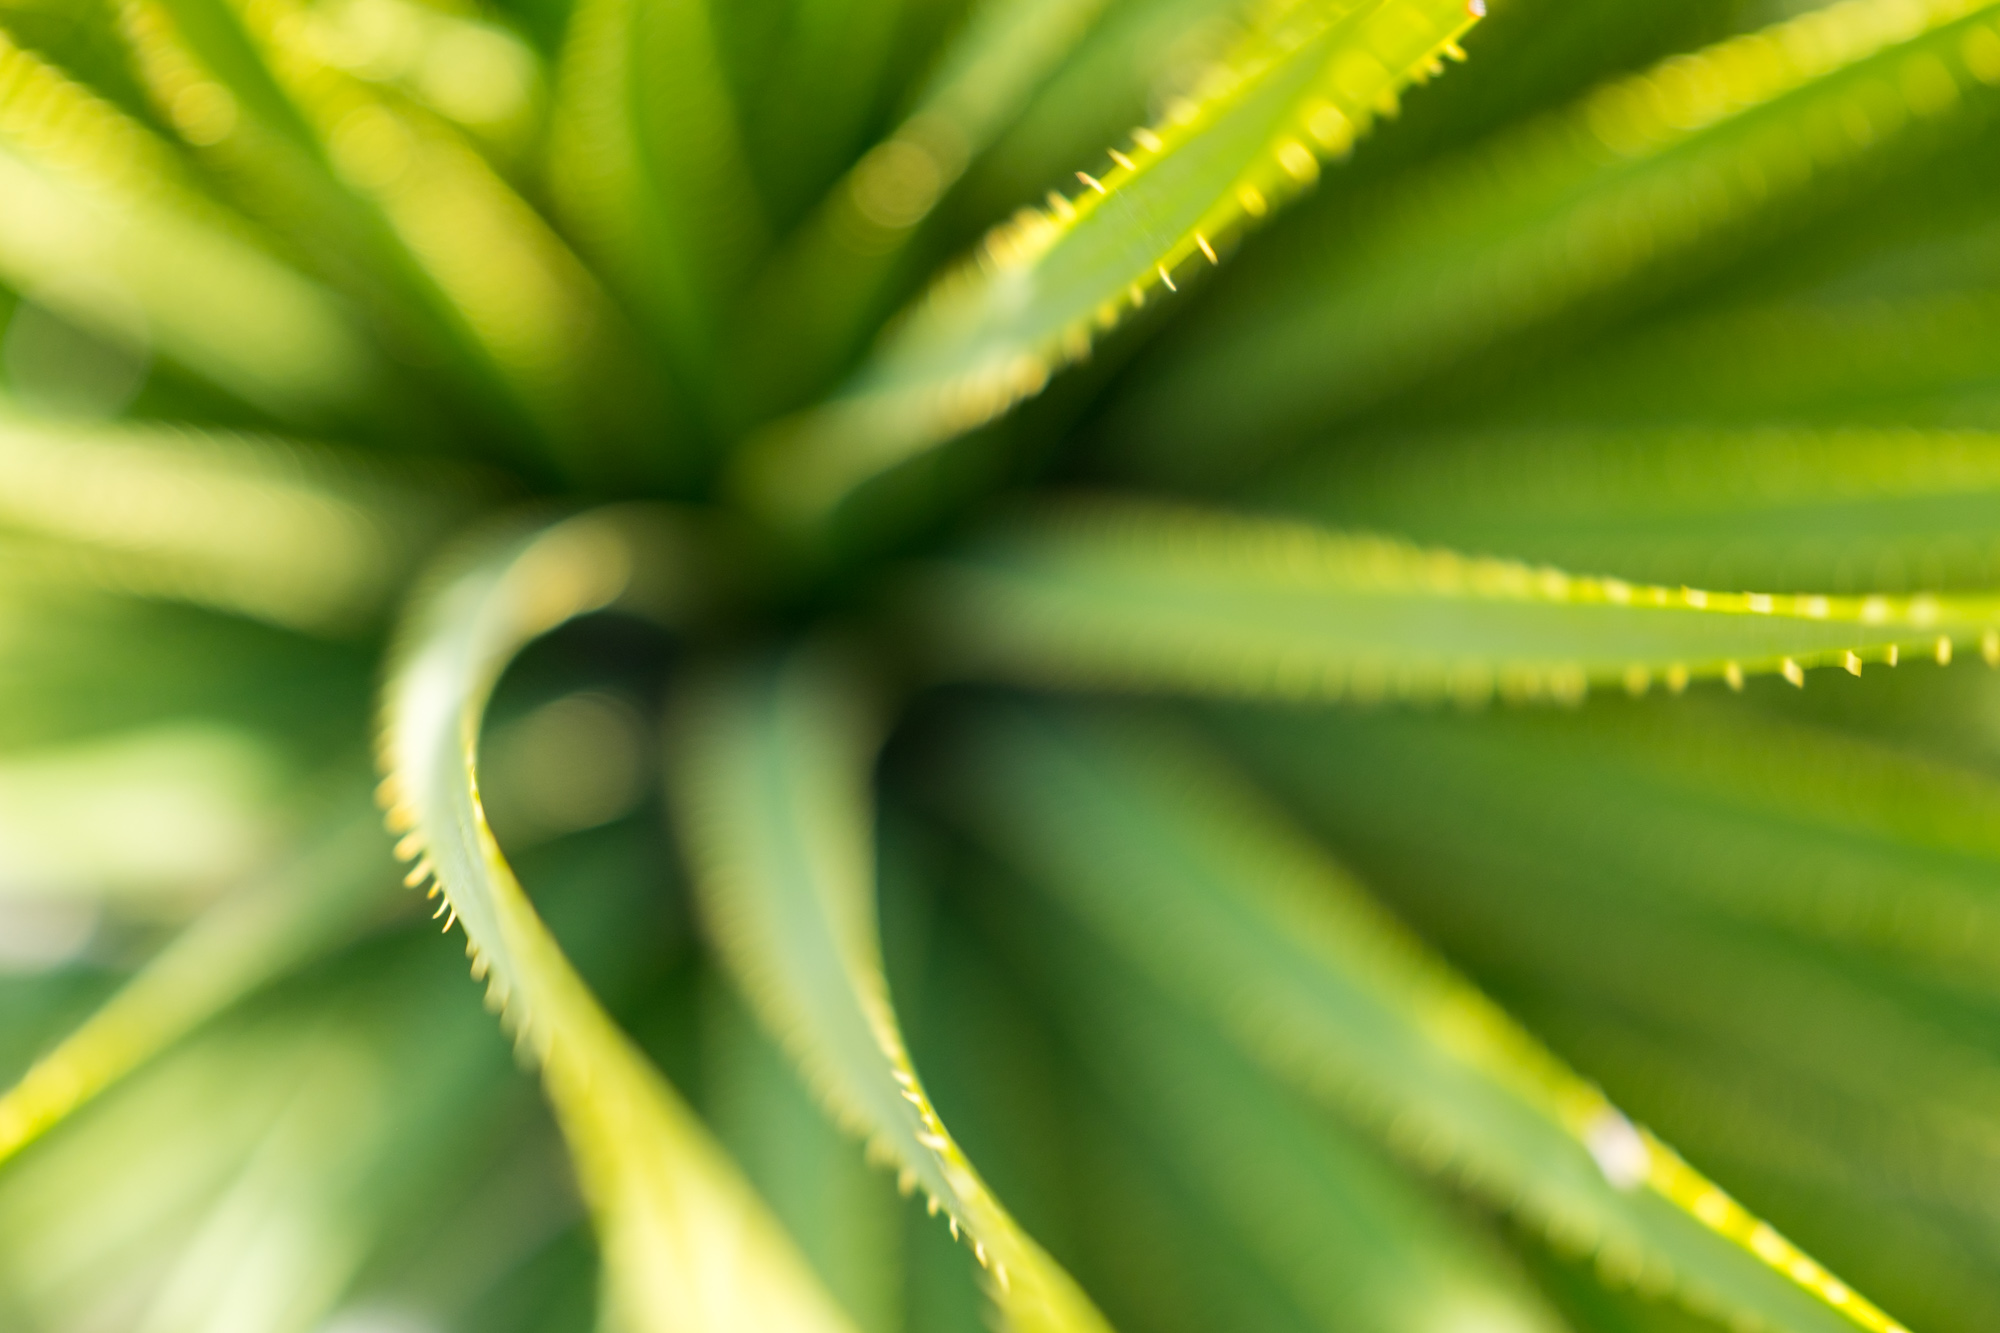 Closeup of an agave plant.